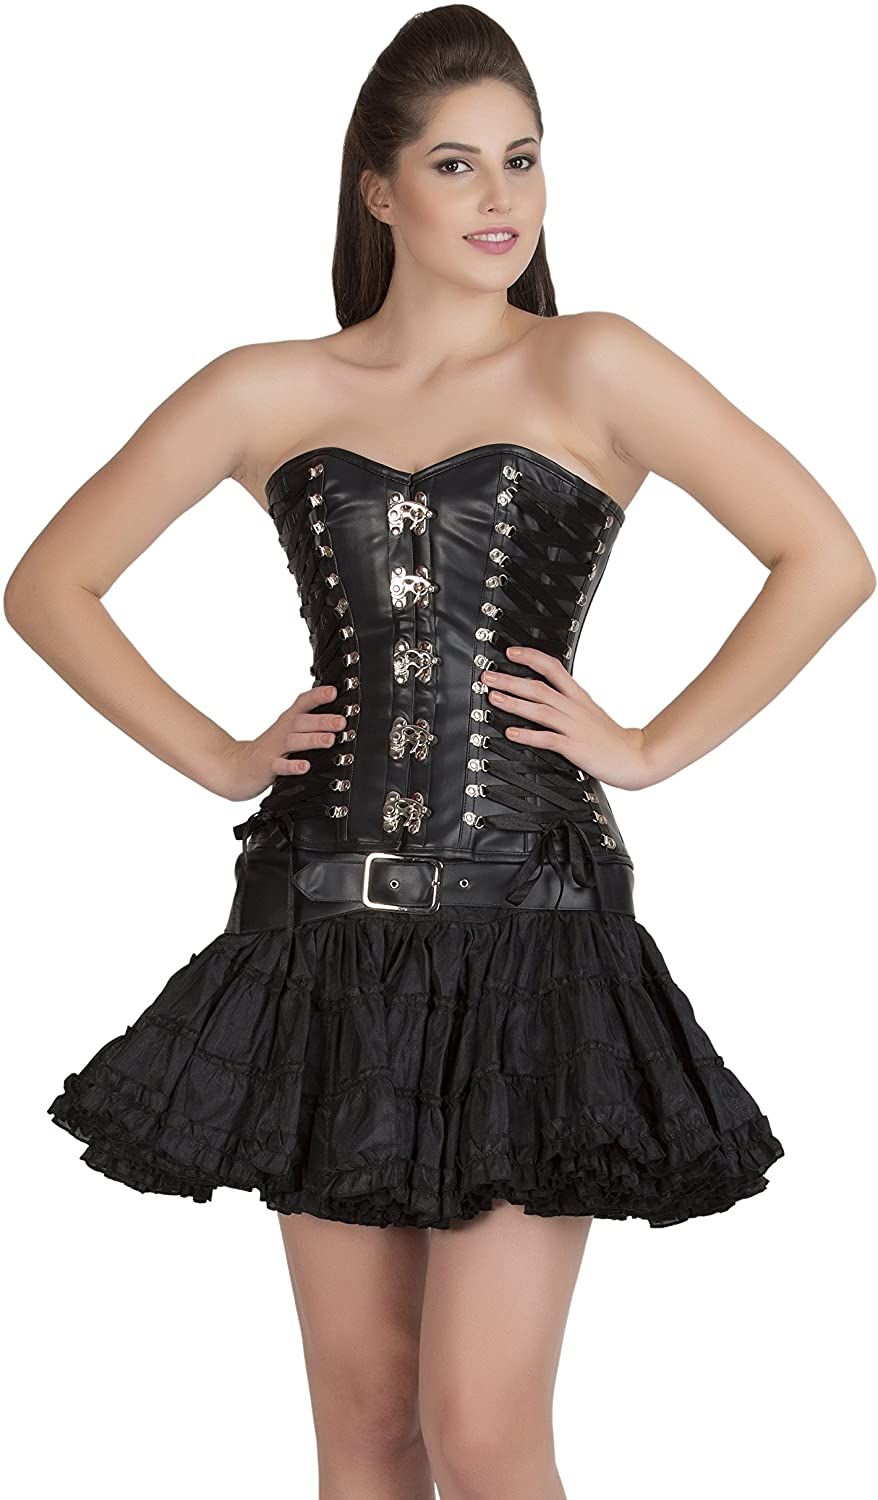 Black Leather Goth Steampunk Plus Size Costume Waist Shaper Overbust Bustier Top